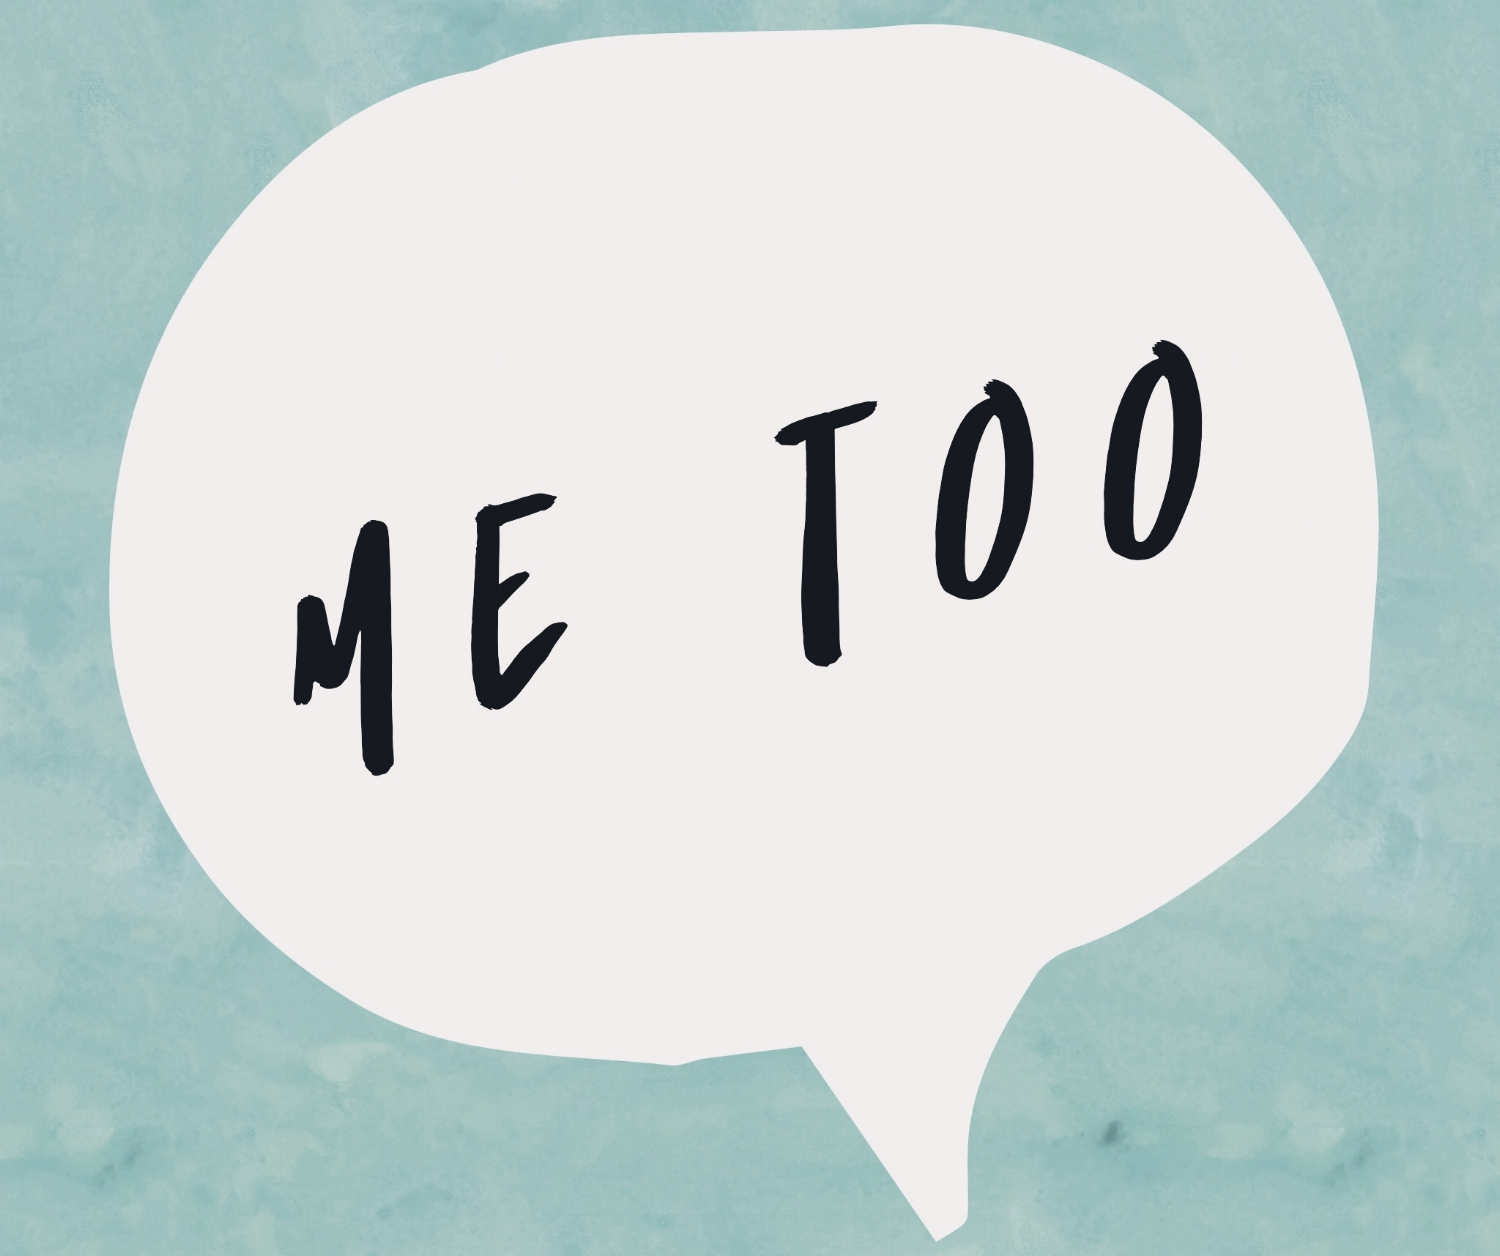 Annal Rape a #metoo story about marital rape (by anonymous) — shannon